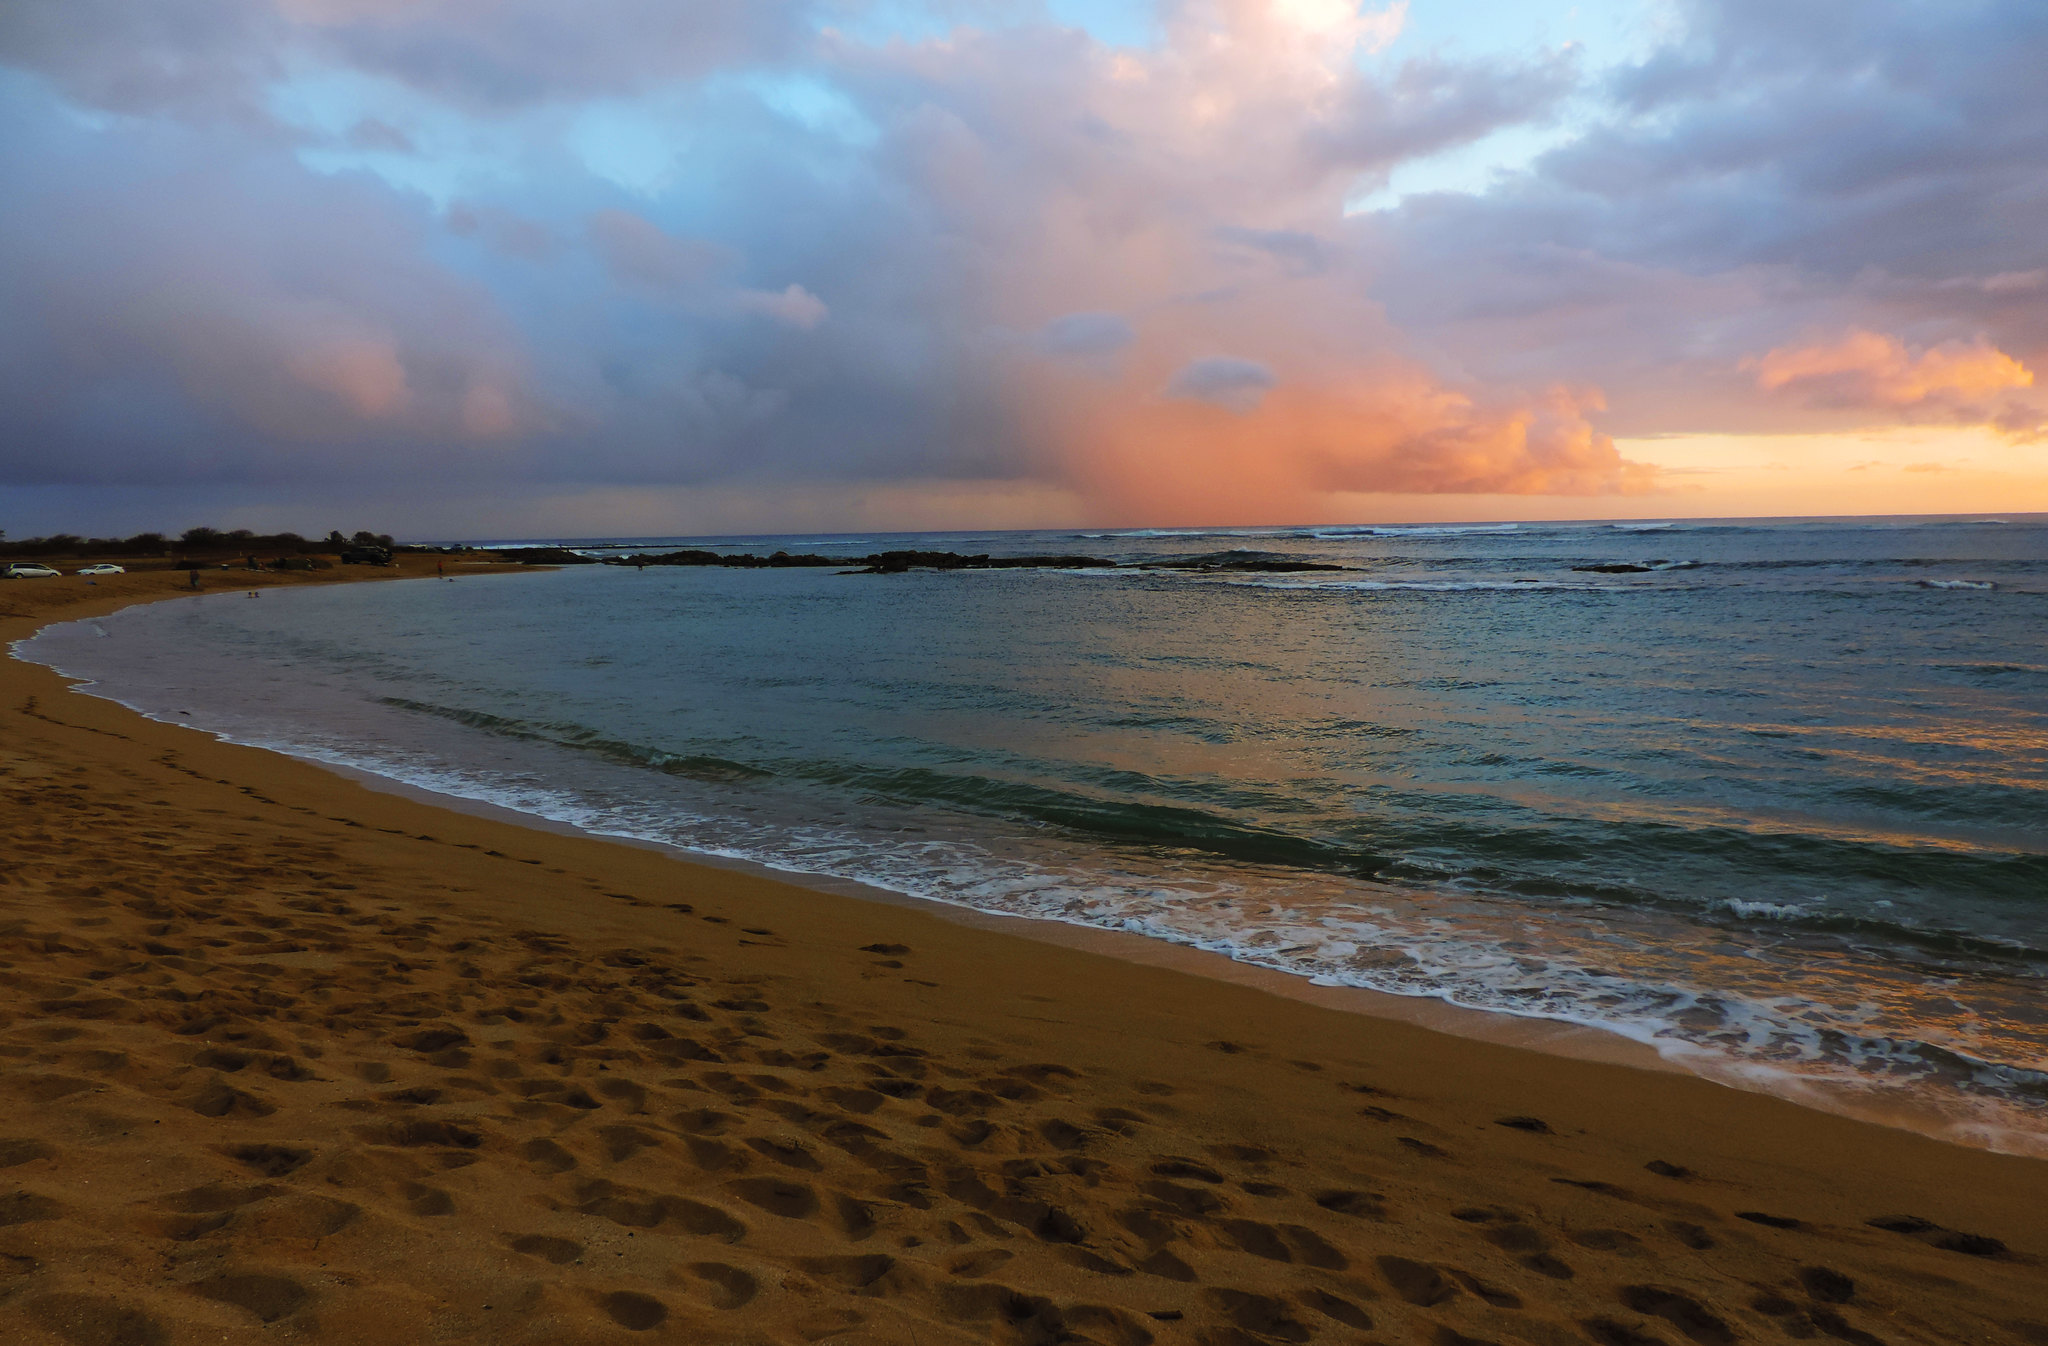 Salt Pond Beach, Kauai, Hawaii